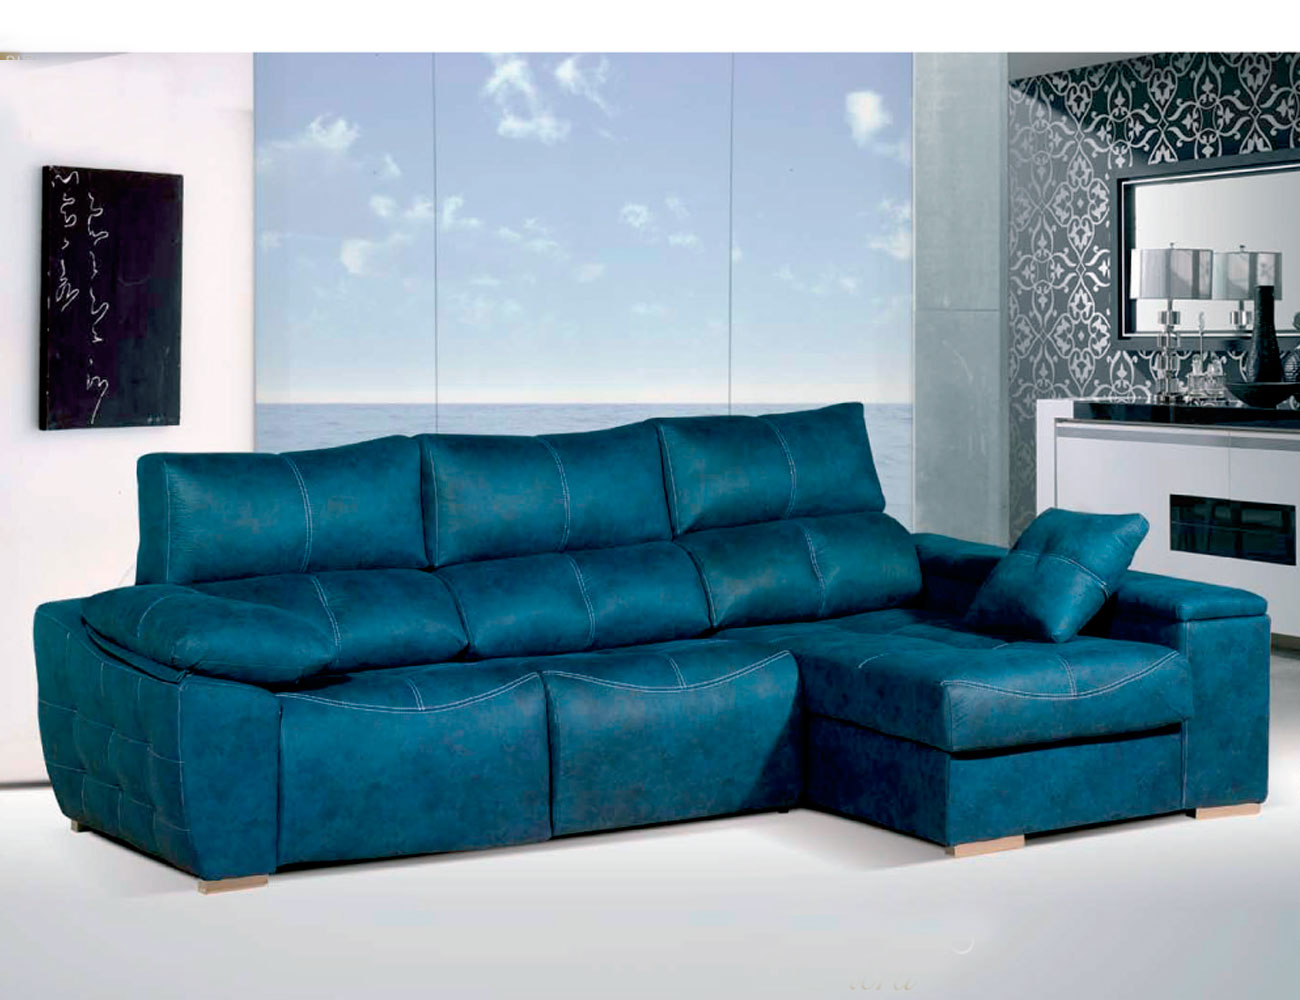 Sofa chaiselongue relax 2 motores anti manchas turquesa46